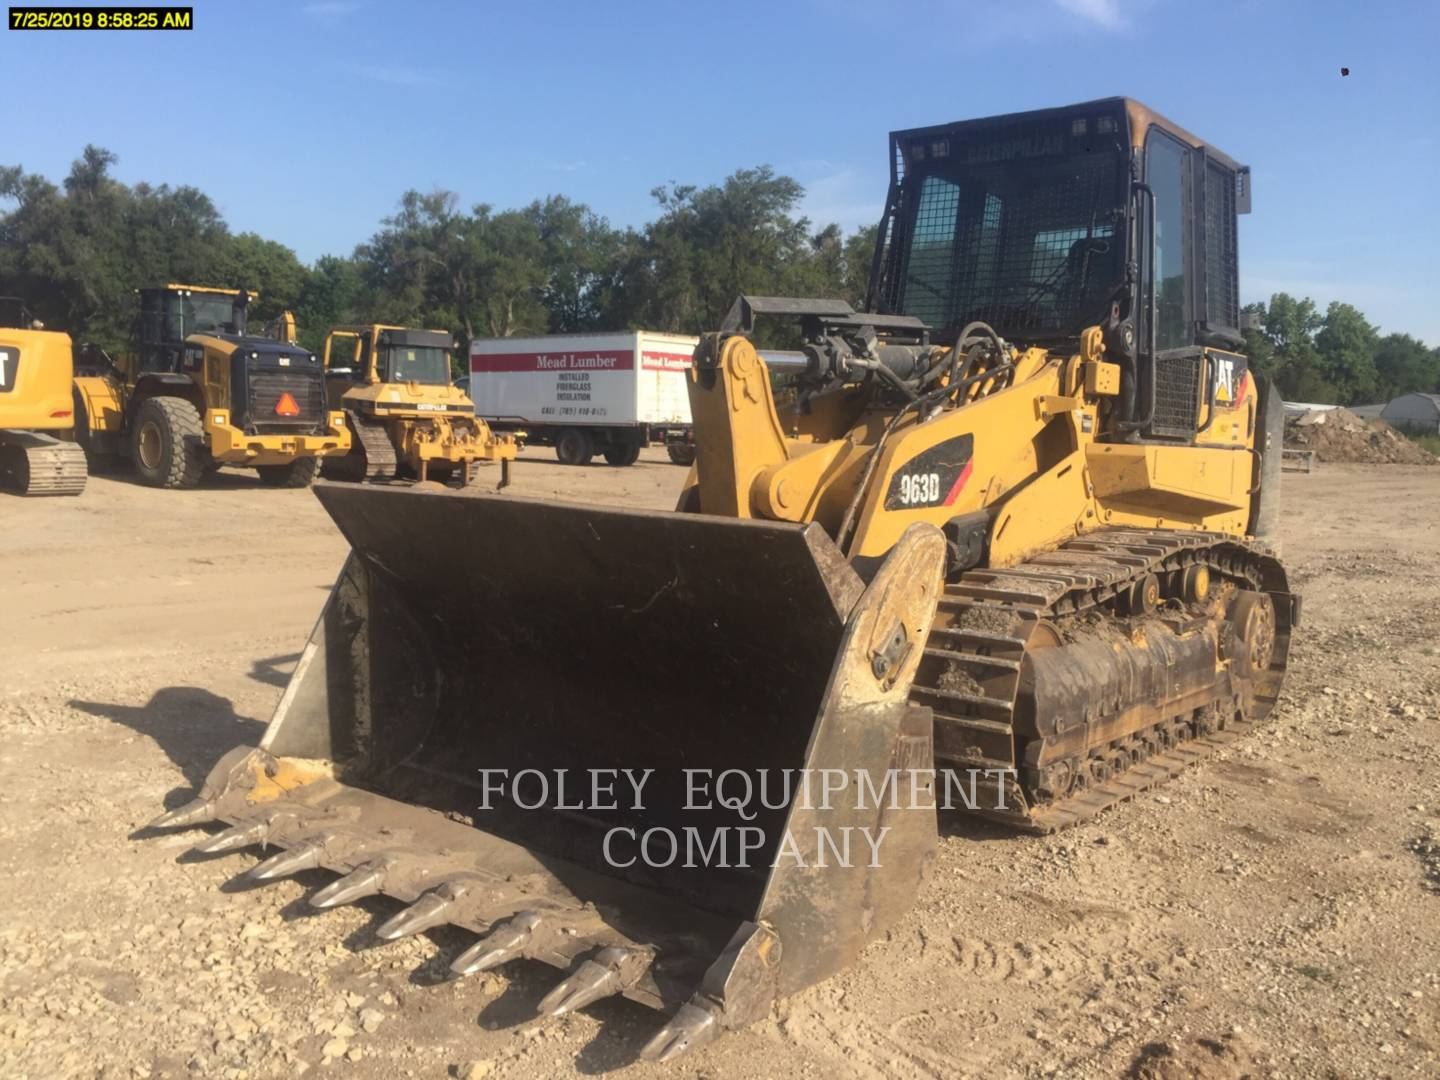 Used Equipment For Sale - Foley Equipment Mobile